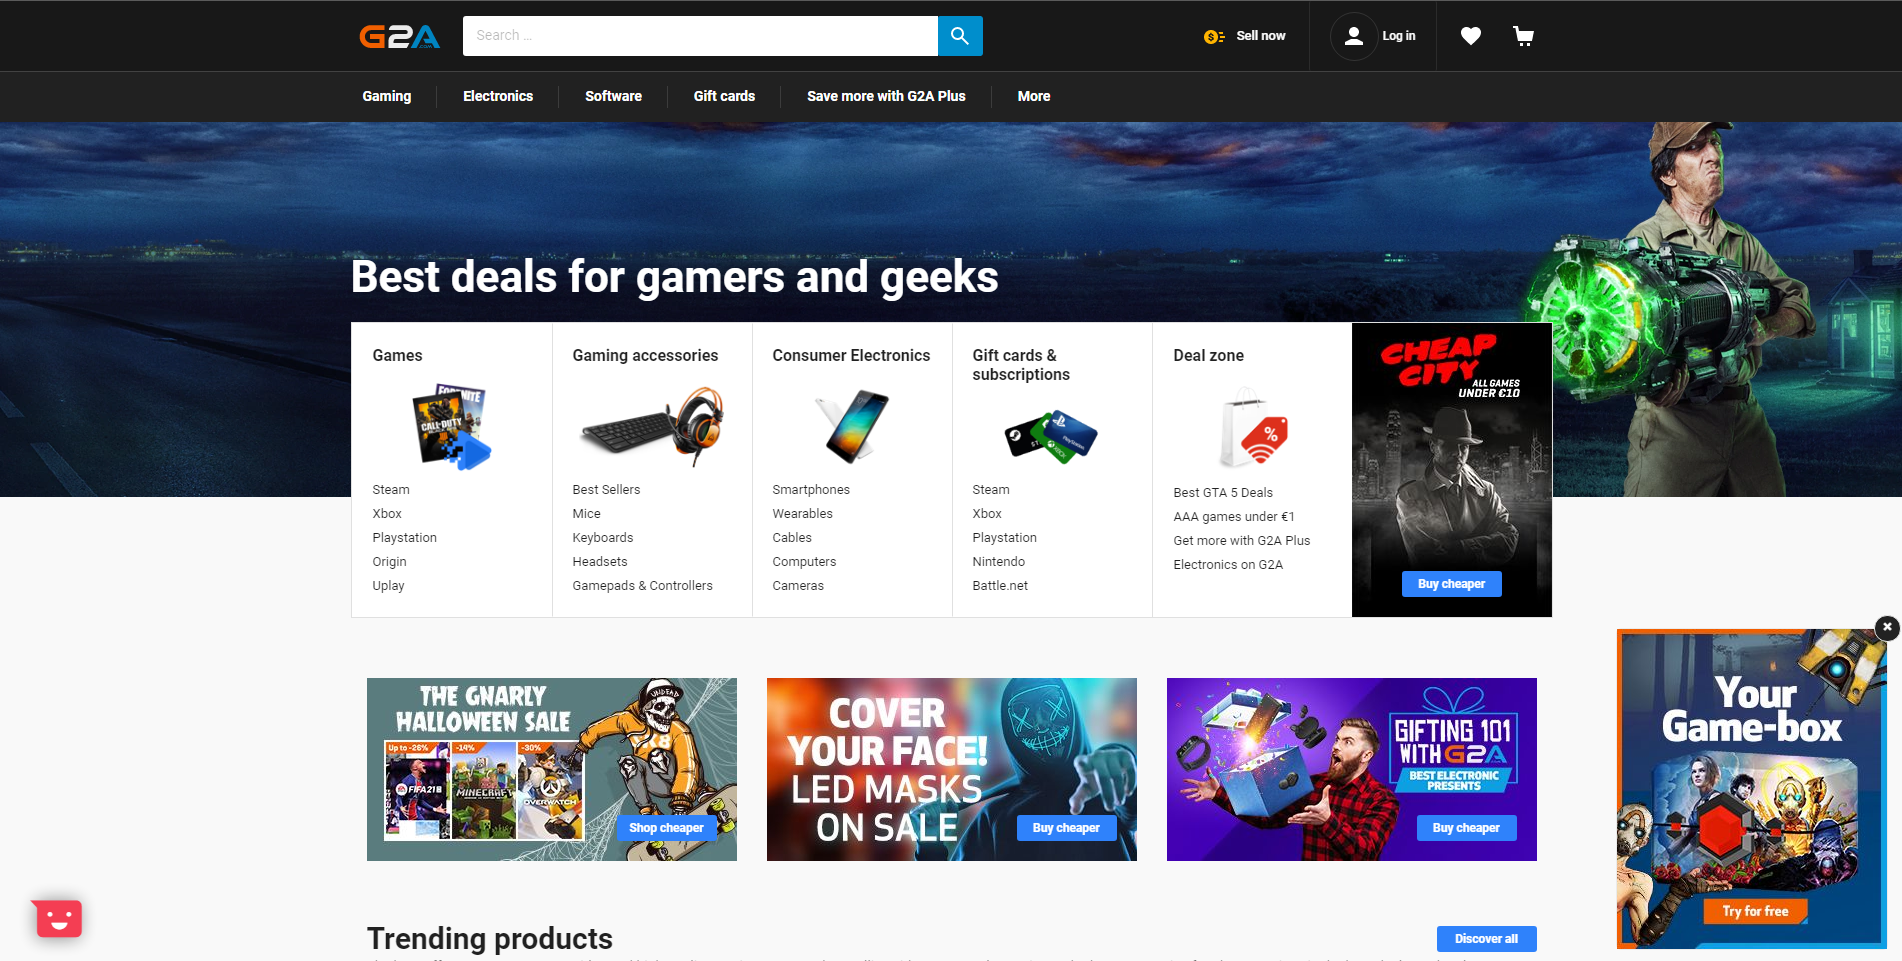 TOP 5 Sites To Buy Games At A Discount - G2A